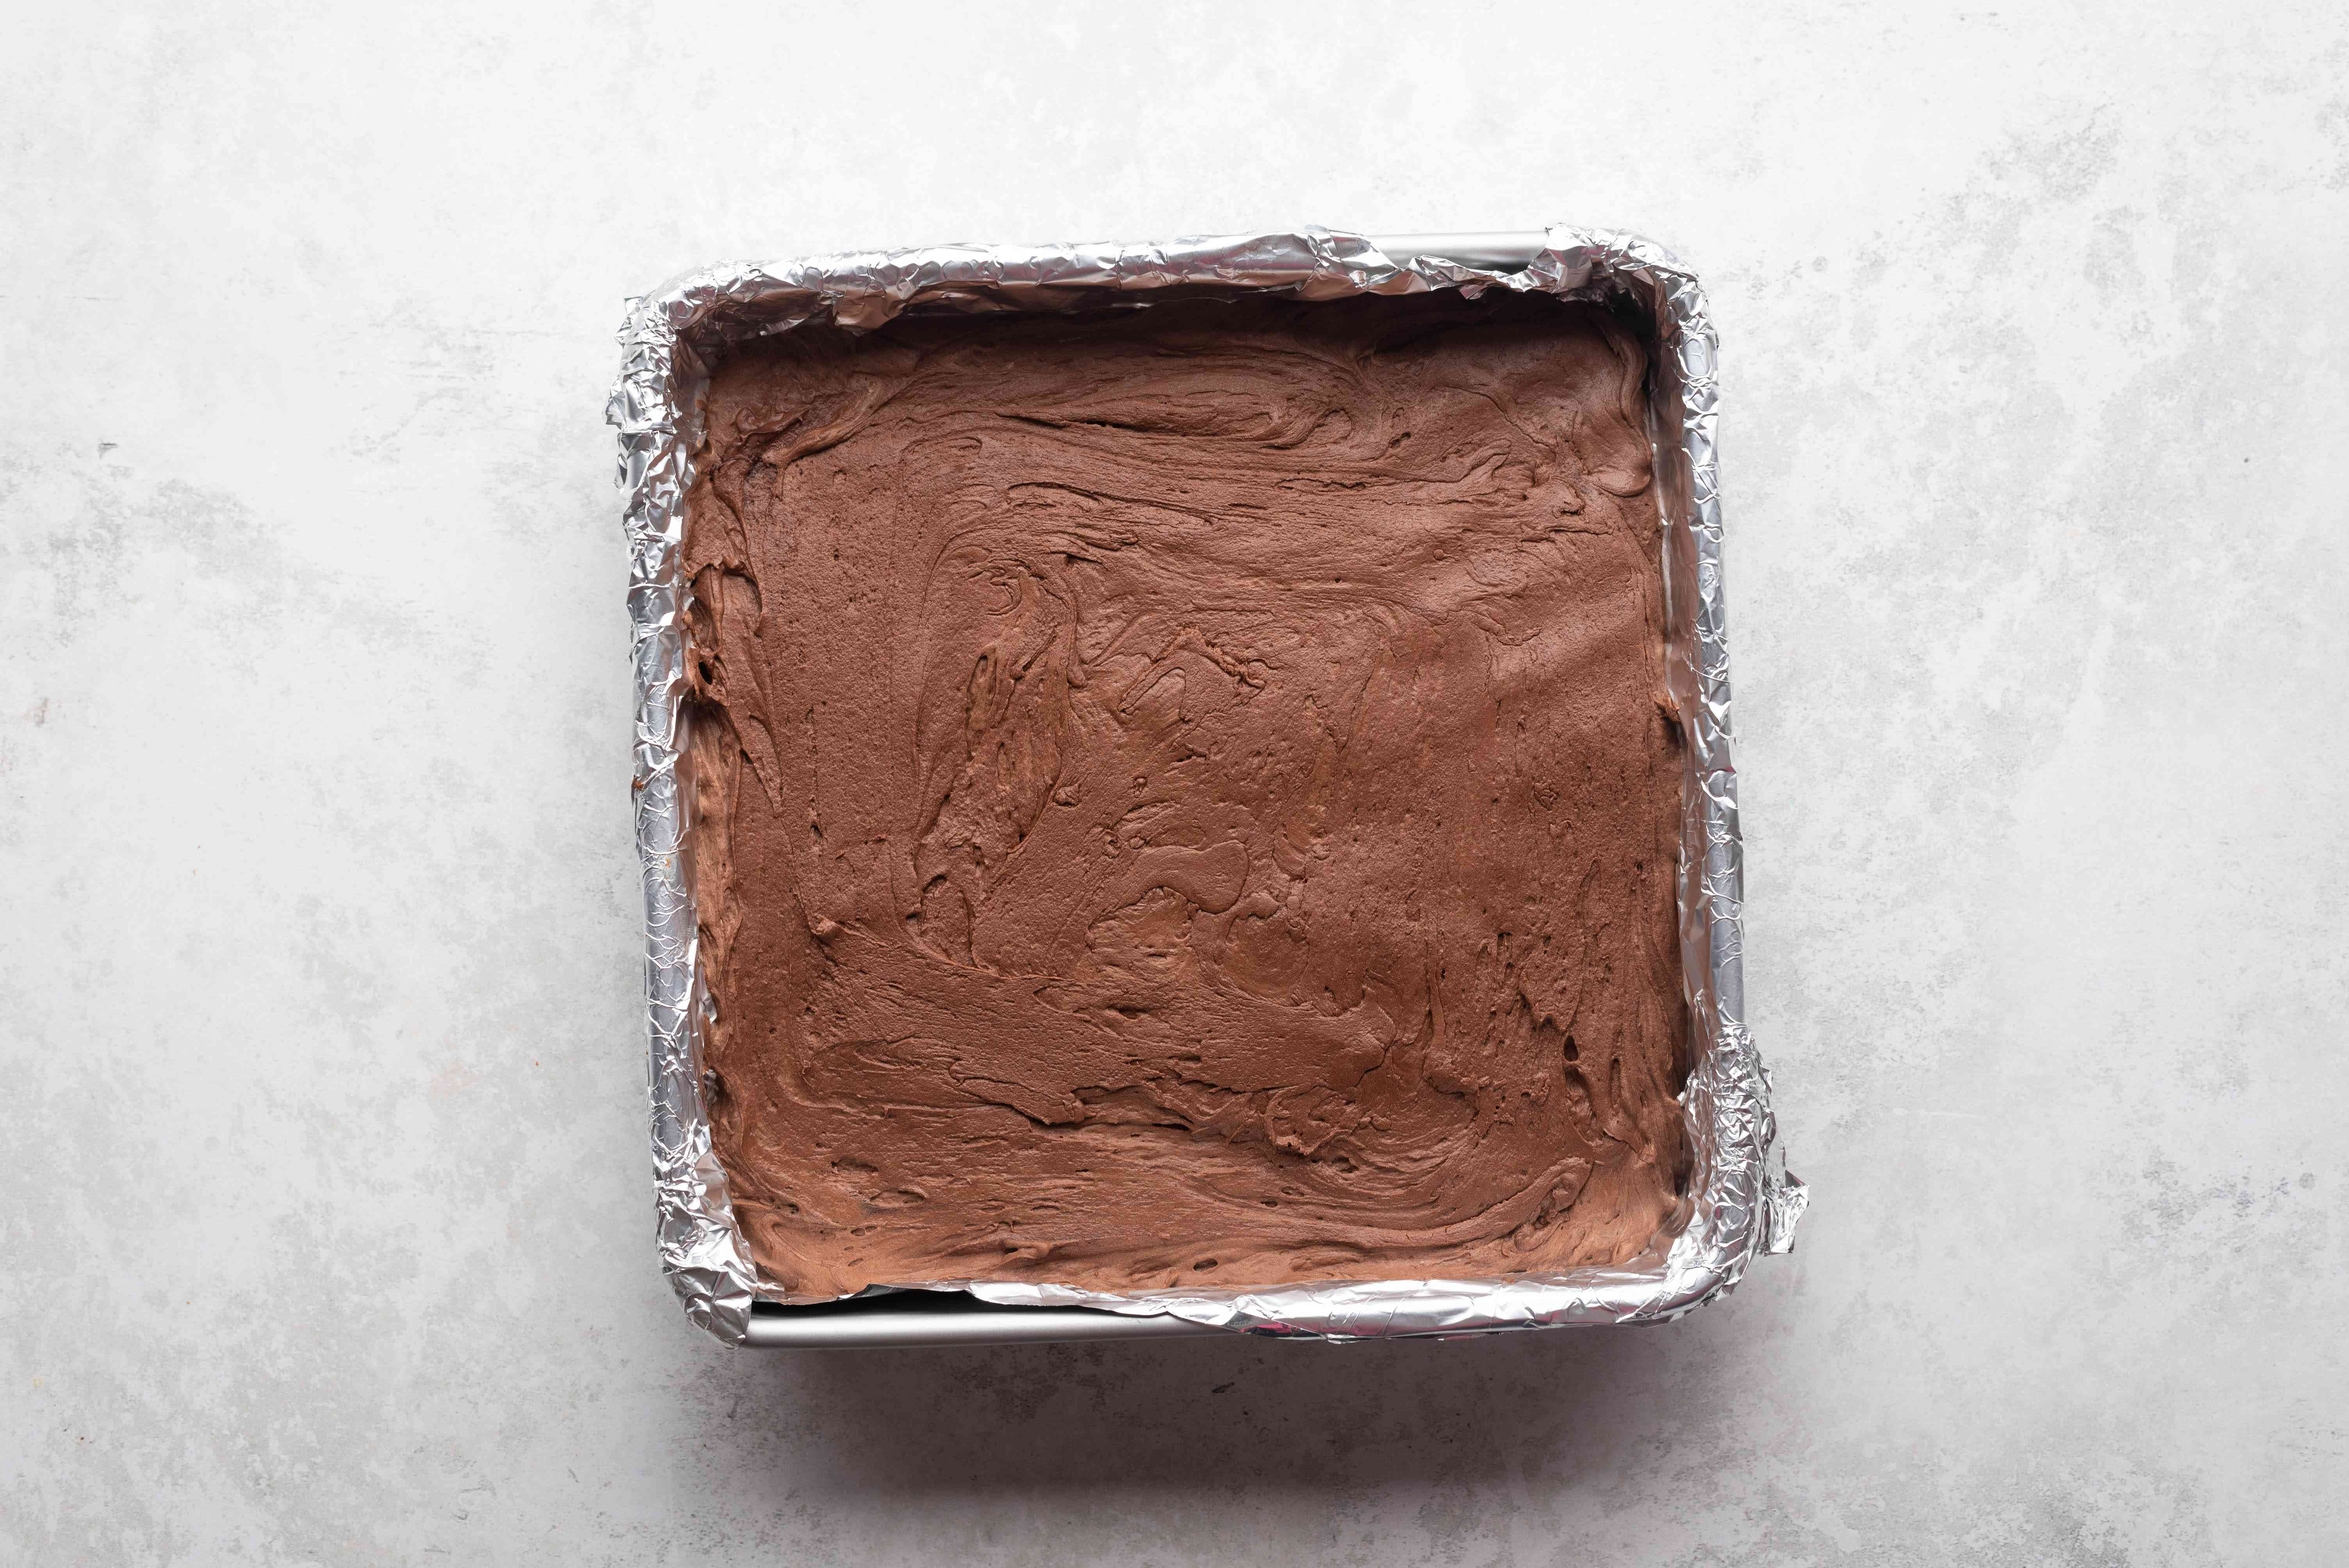 chocolate marshmallow mixture in a prepared baking pan